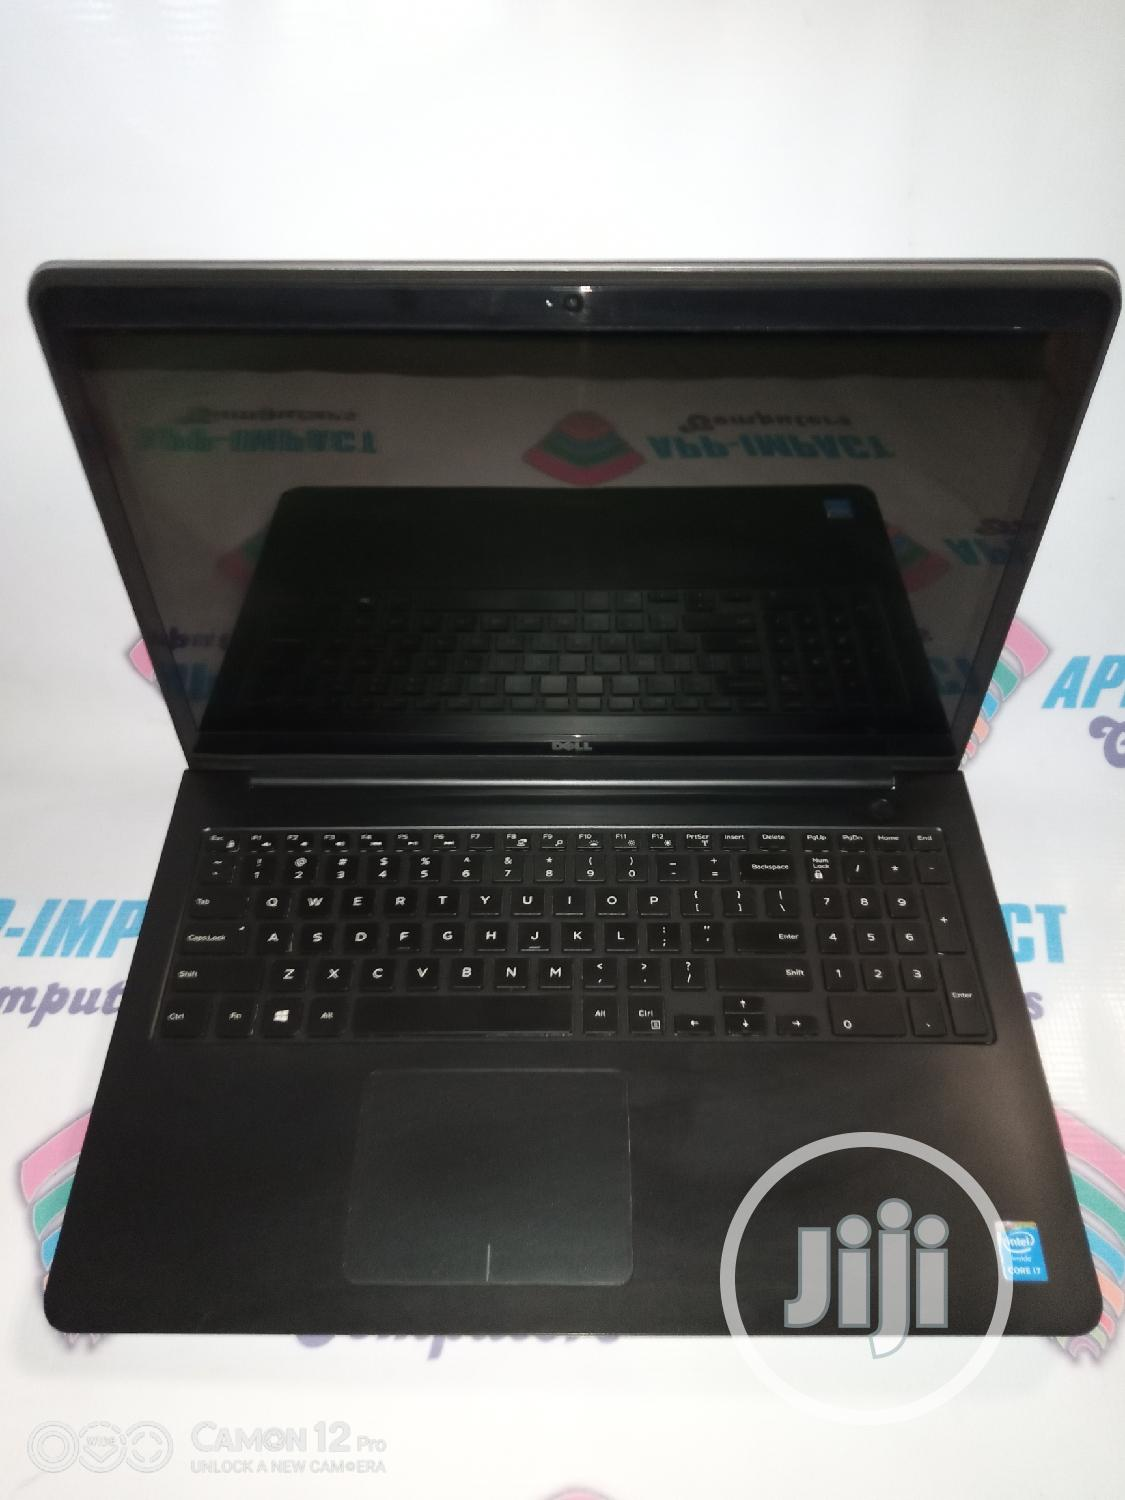 Laptop Dell Inspiron 15 5548 8GB Intel Core i7 HDD 500GB | Laptops & Computers for sale in Mushin, Lagos State, Nigeria